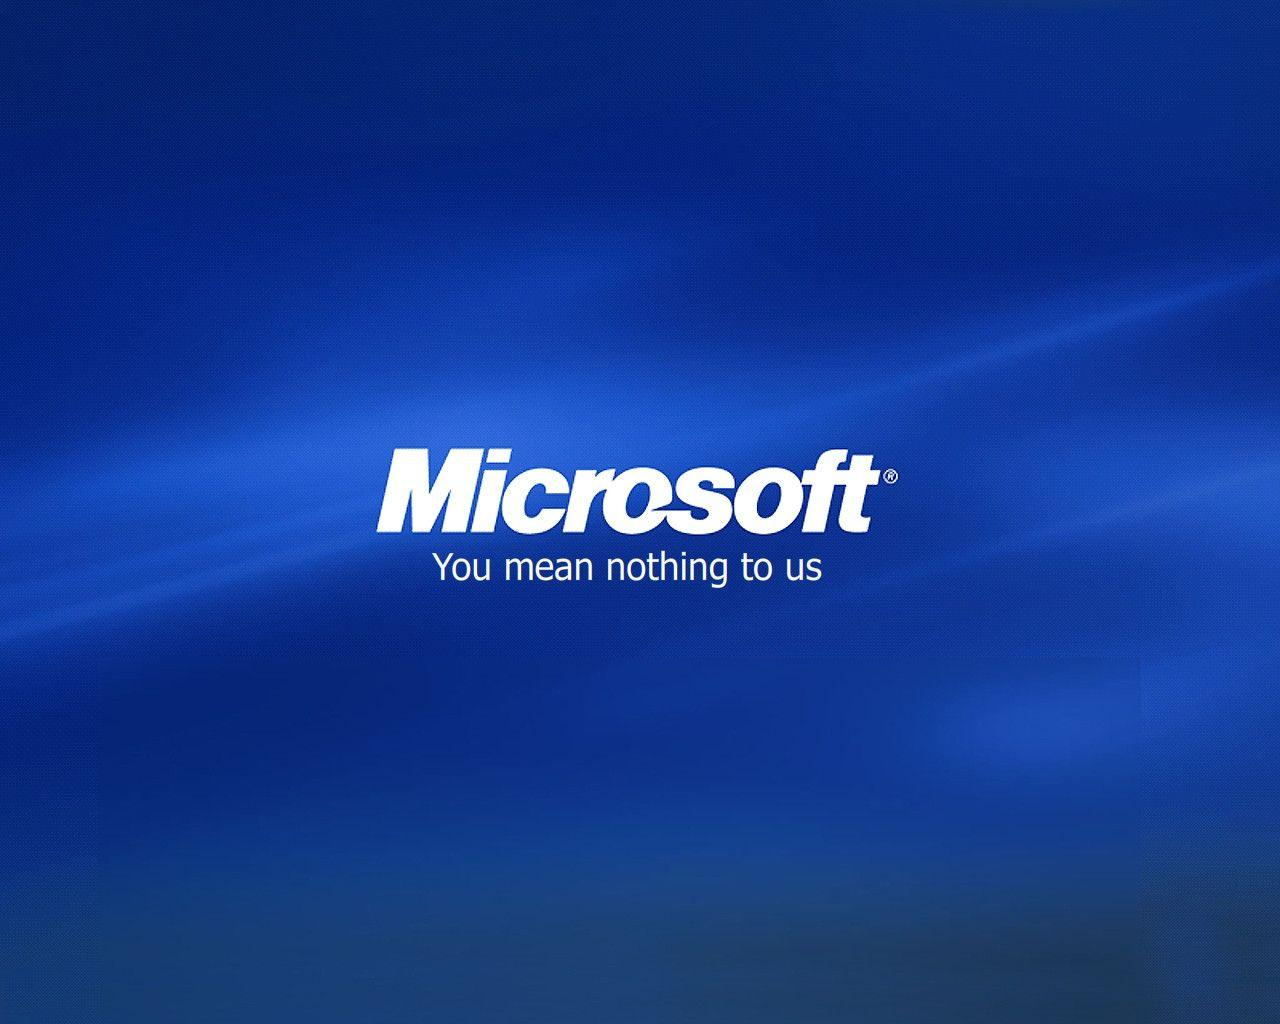 Microsoft Logo Wallpapers - Top Free Microsoft Logo Backgrounds